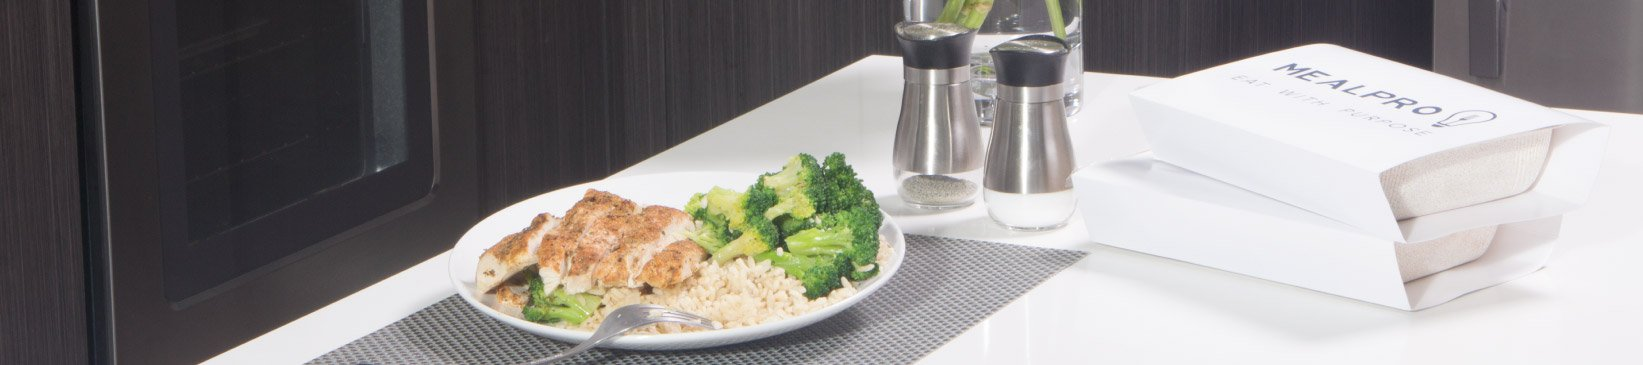 Heatlhy MealPro meals plated on the table